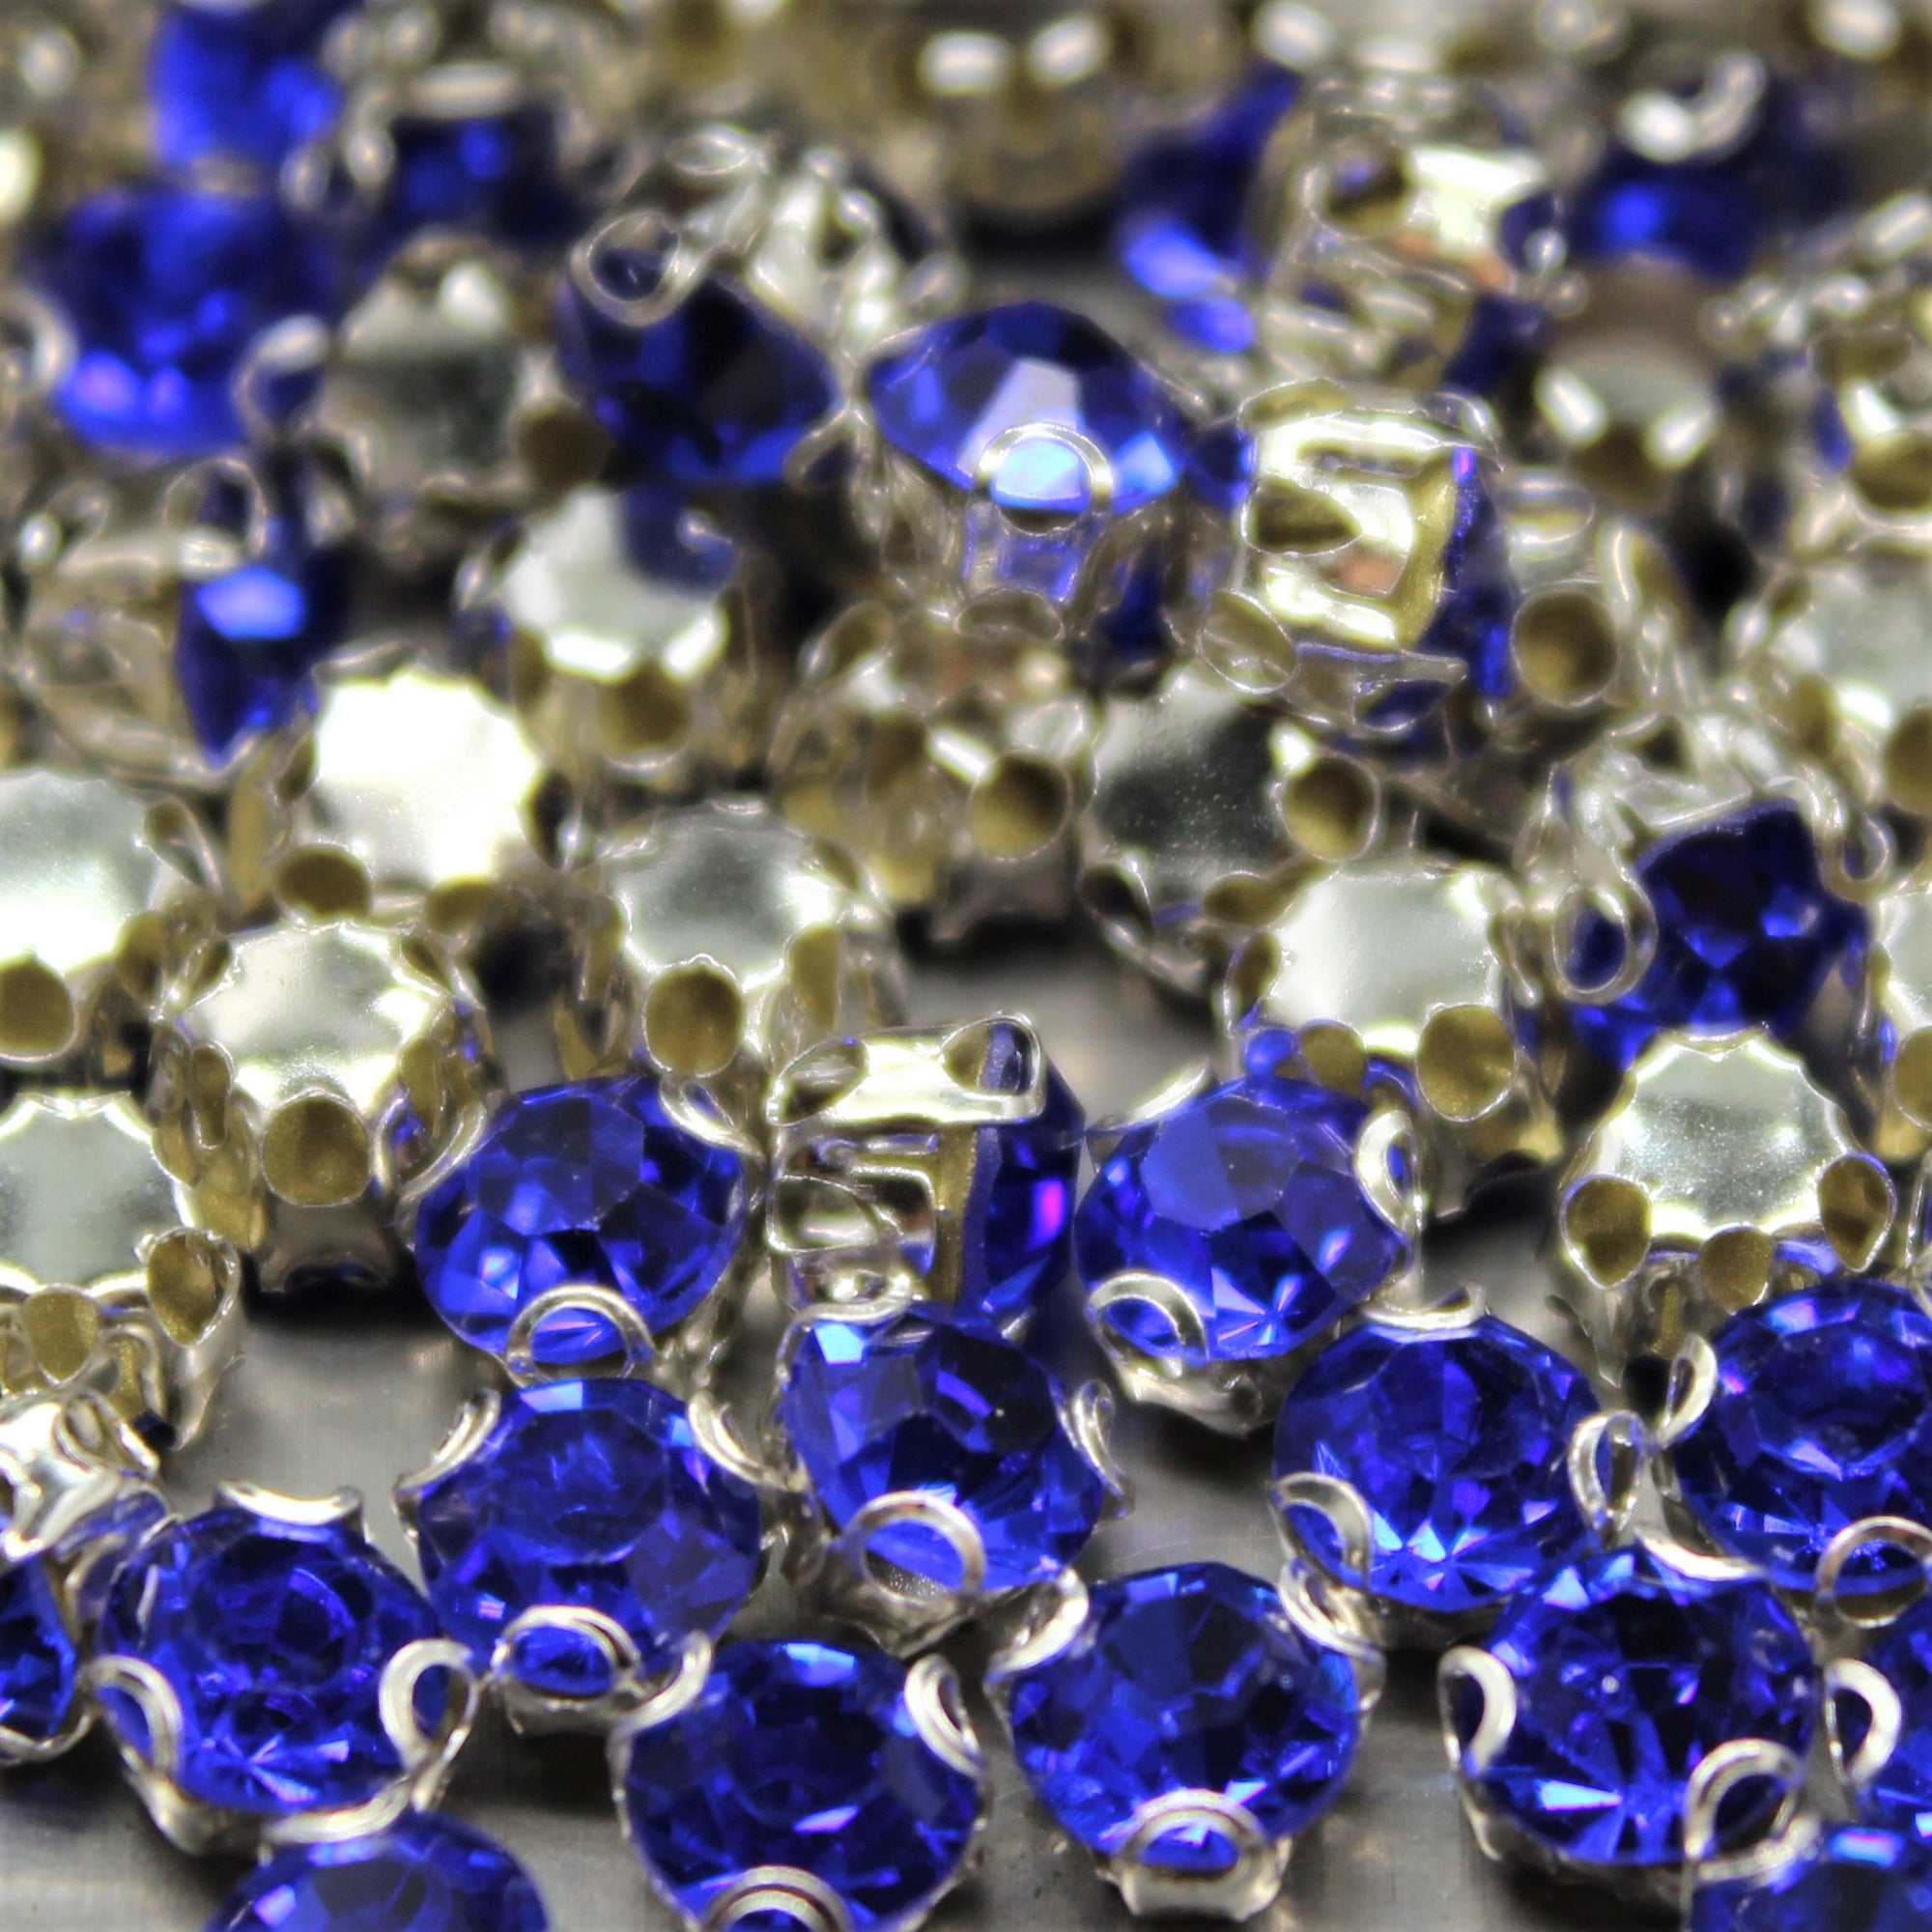 Chaton Montees, SS-14, Alloy, Royal Blue, 4mm x 4mm, Sold per pkg of 60